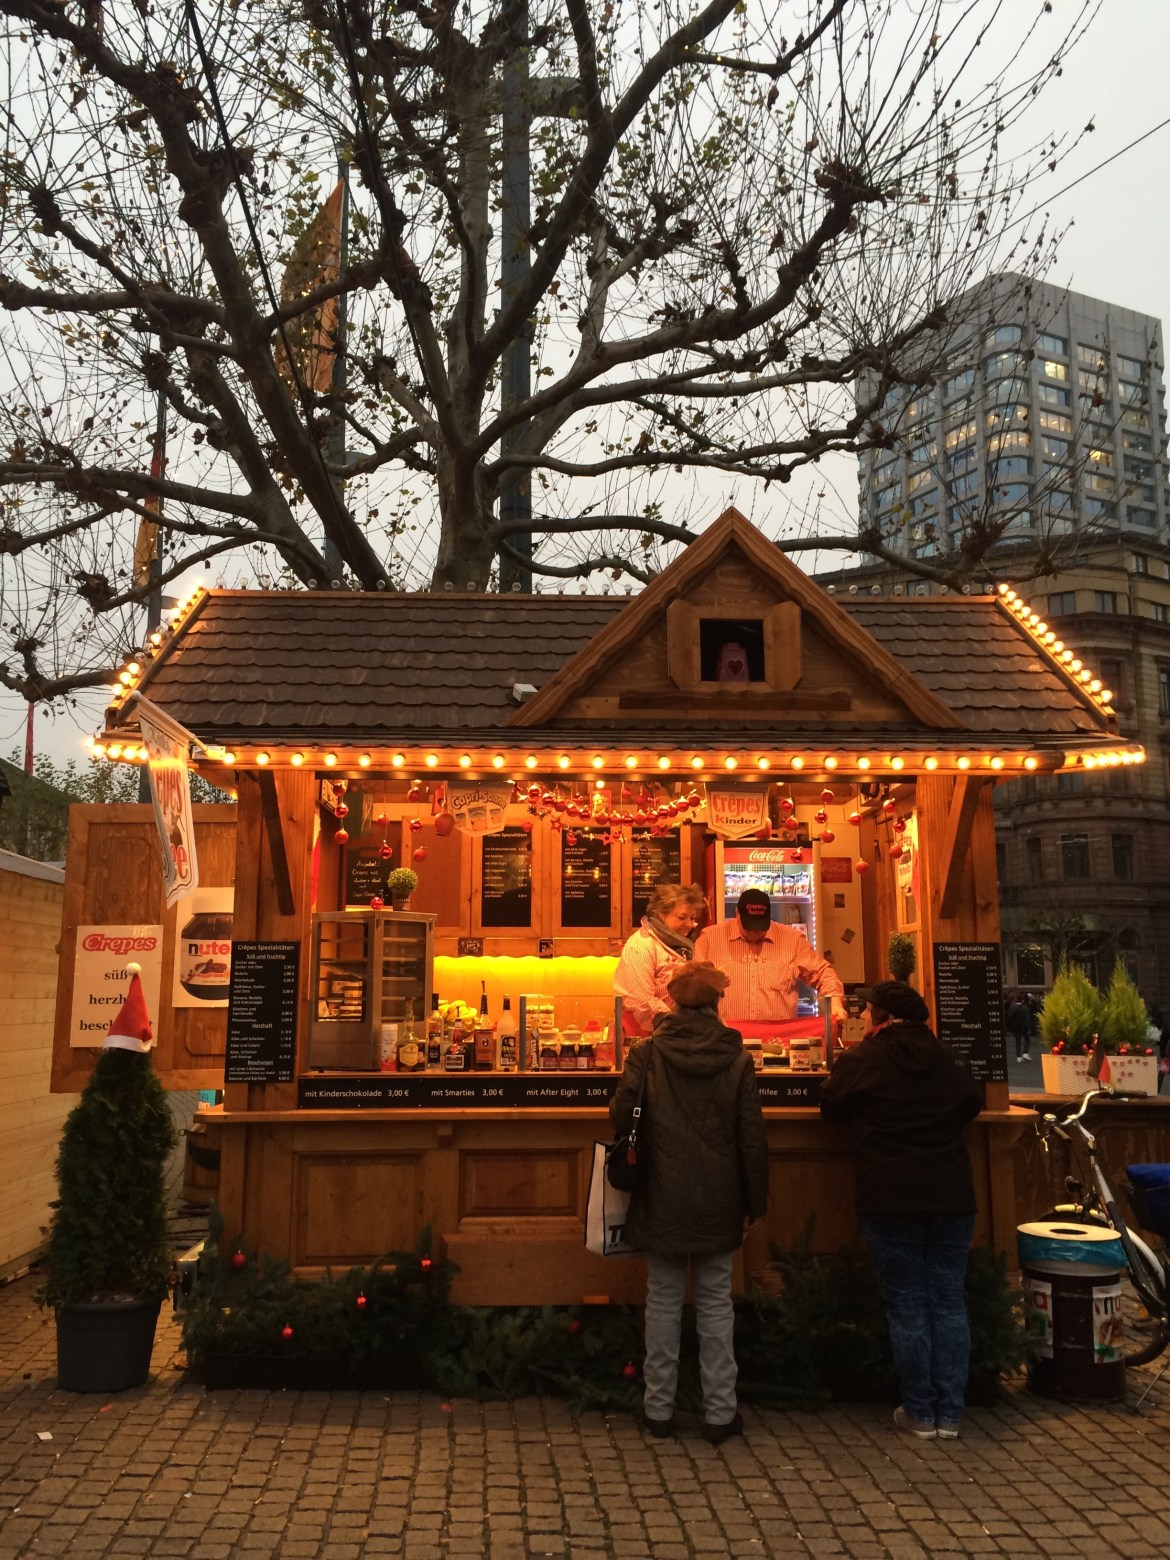 Weihnachtsmarkt Langos.6 Christmas Market Treats You Ve Probably Never Heard Of